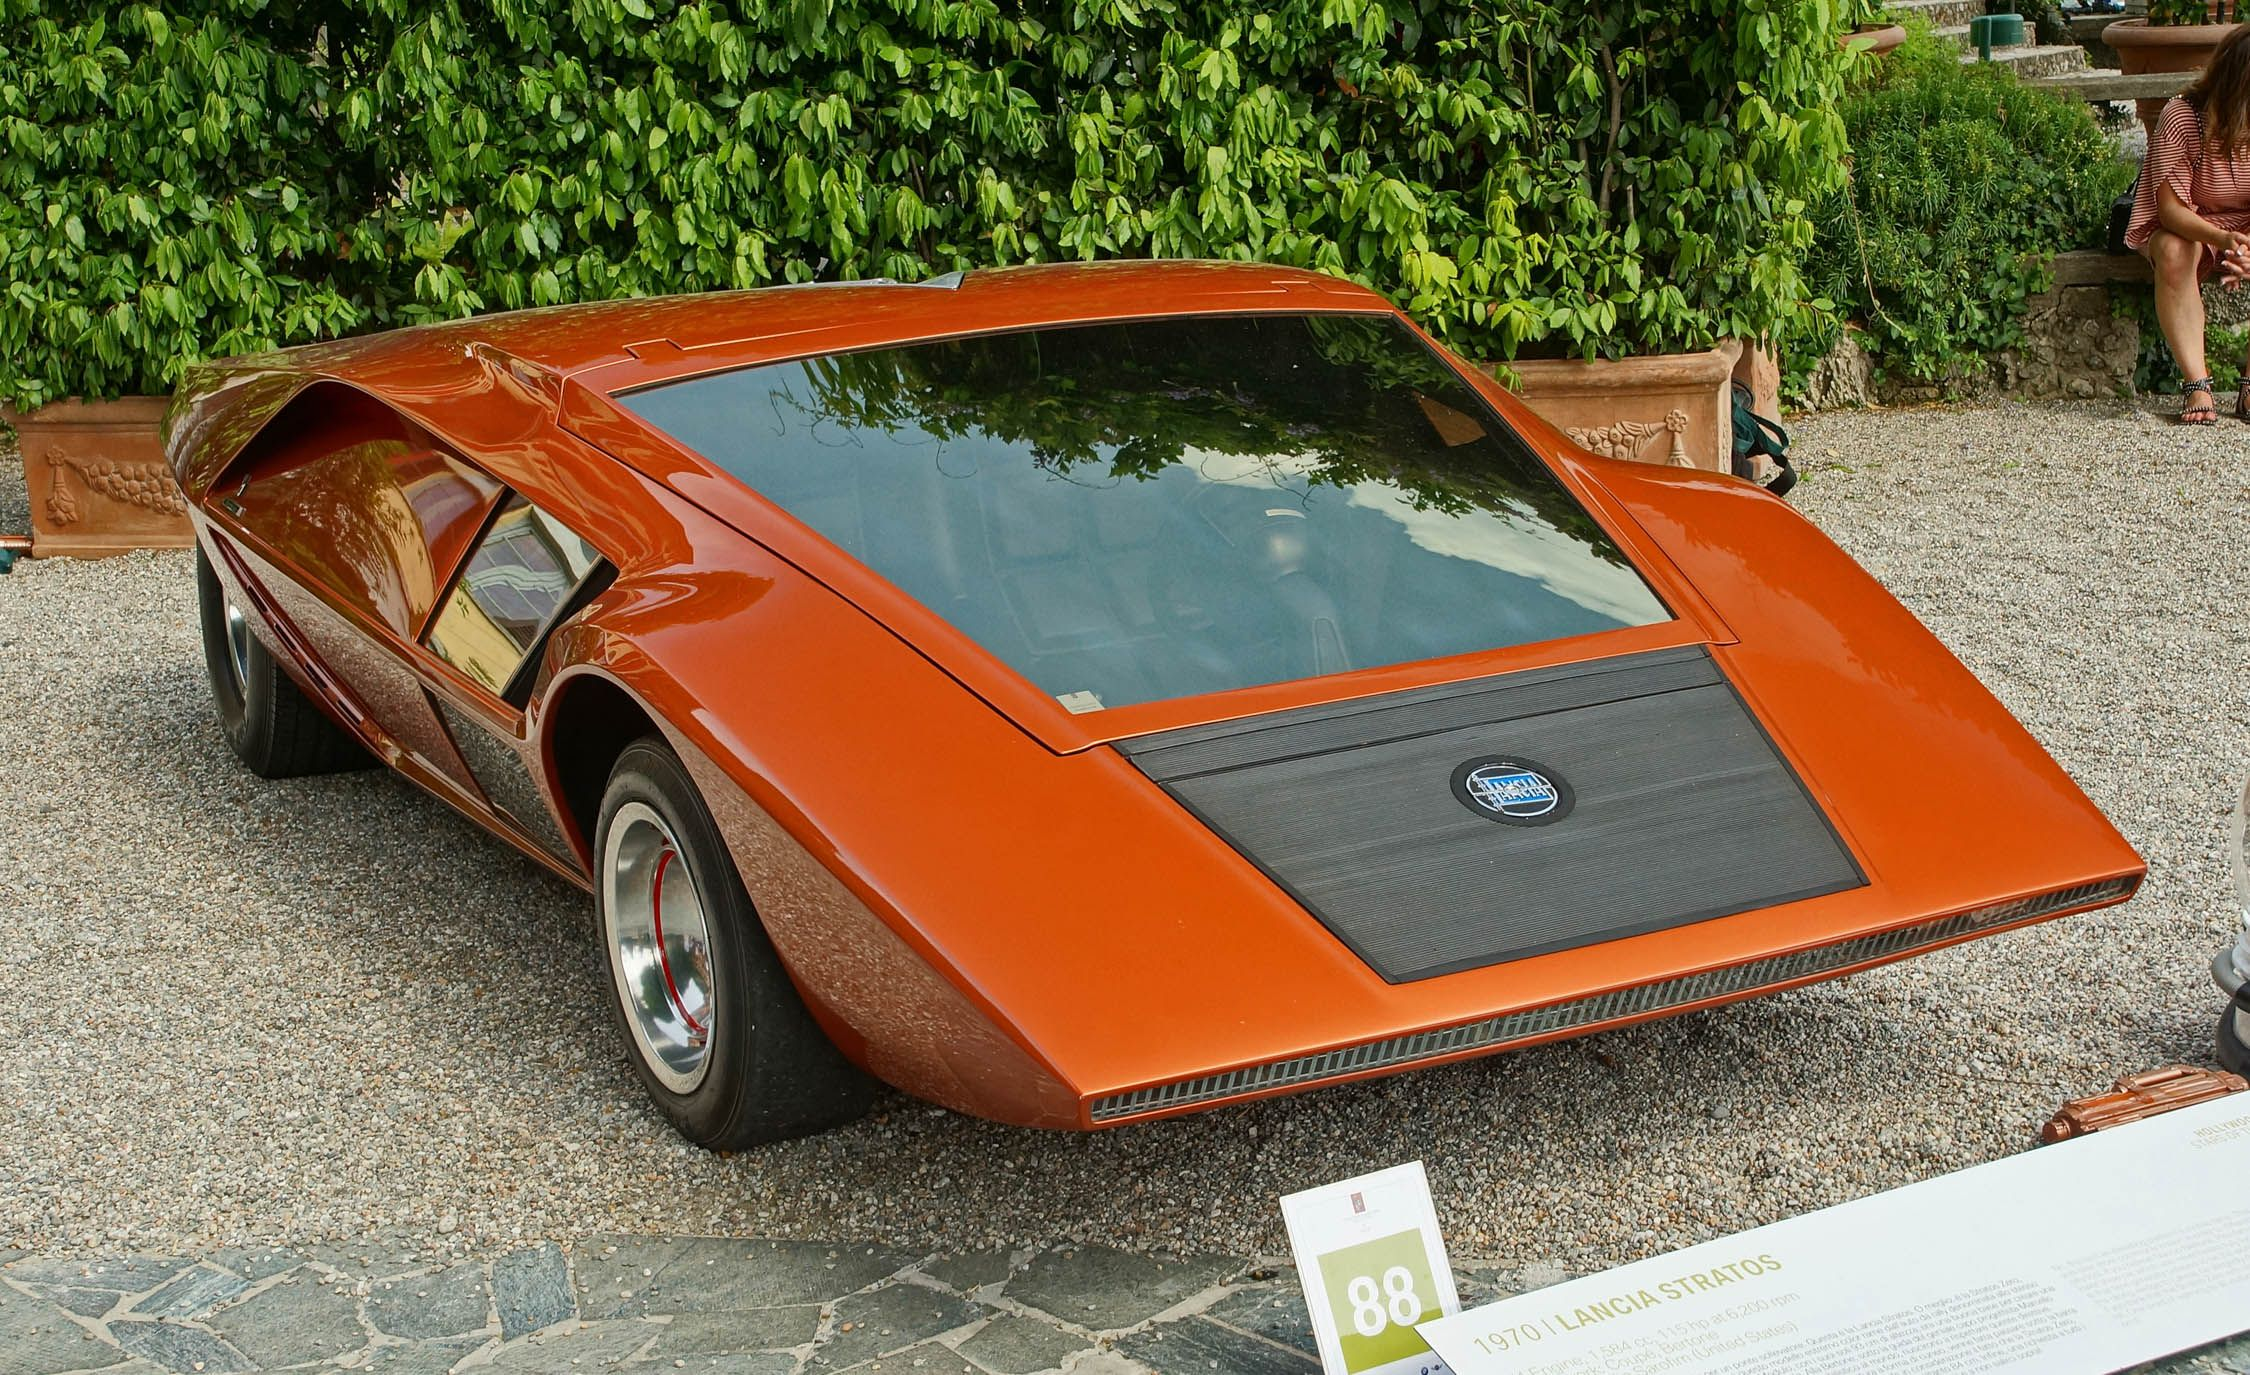 The Lancia Stratos Hf Zero From 1970 Was The Ultimate Wedge Shaped